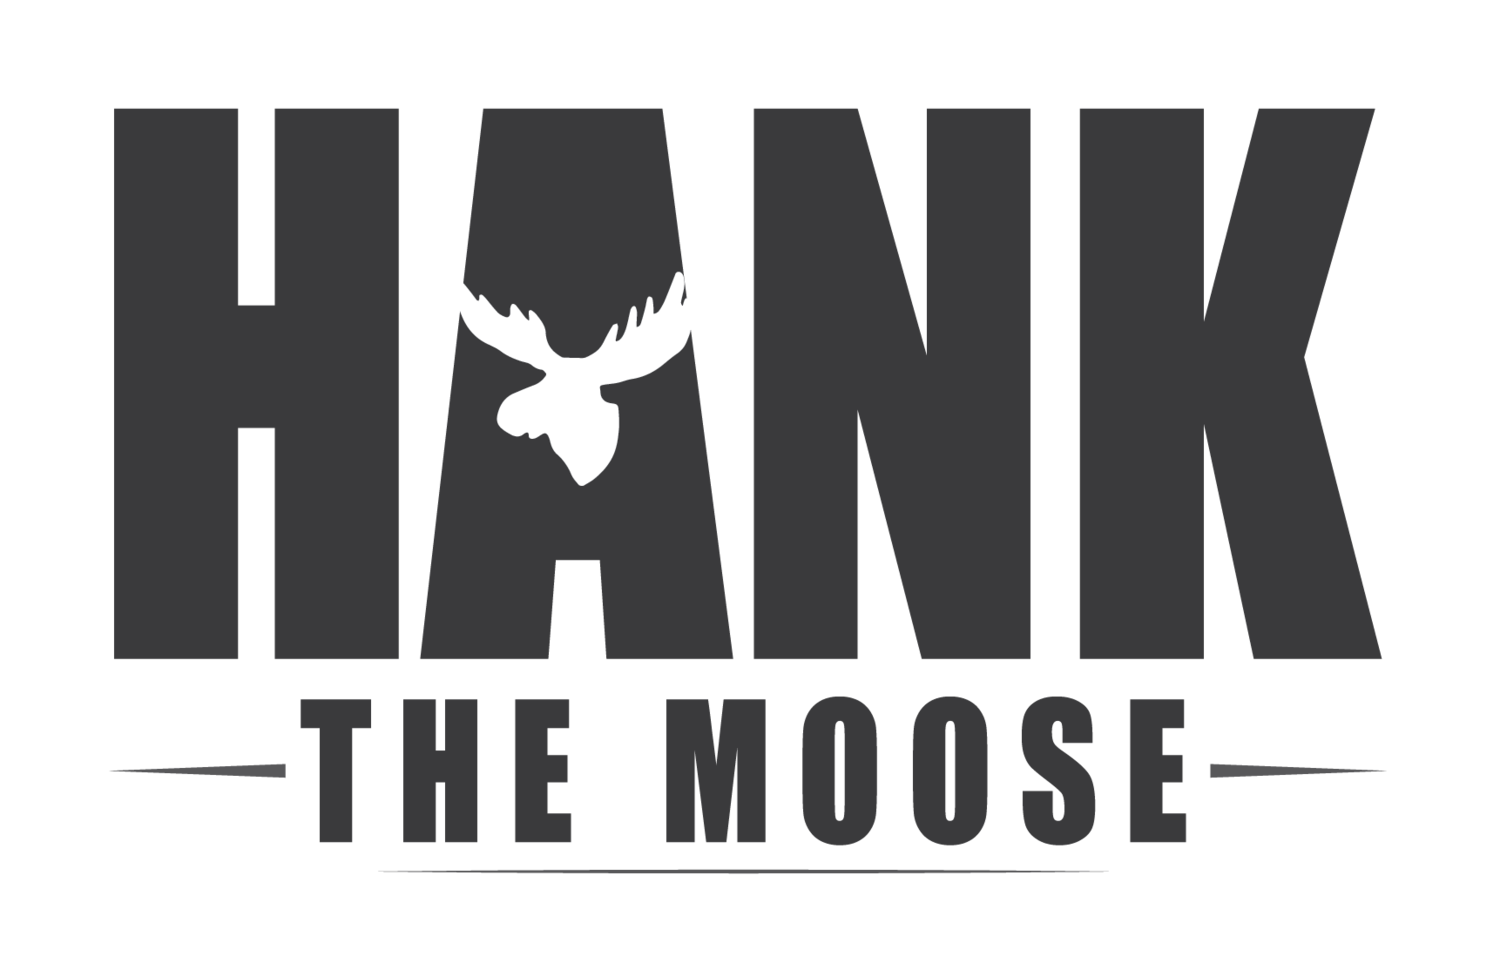 Hank the Moose